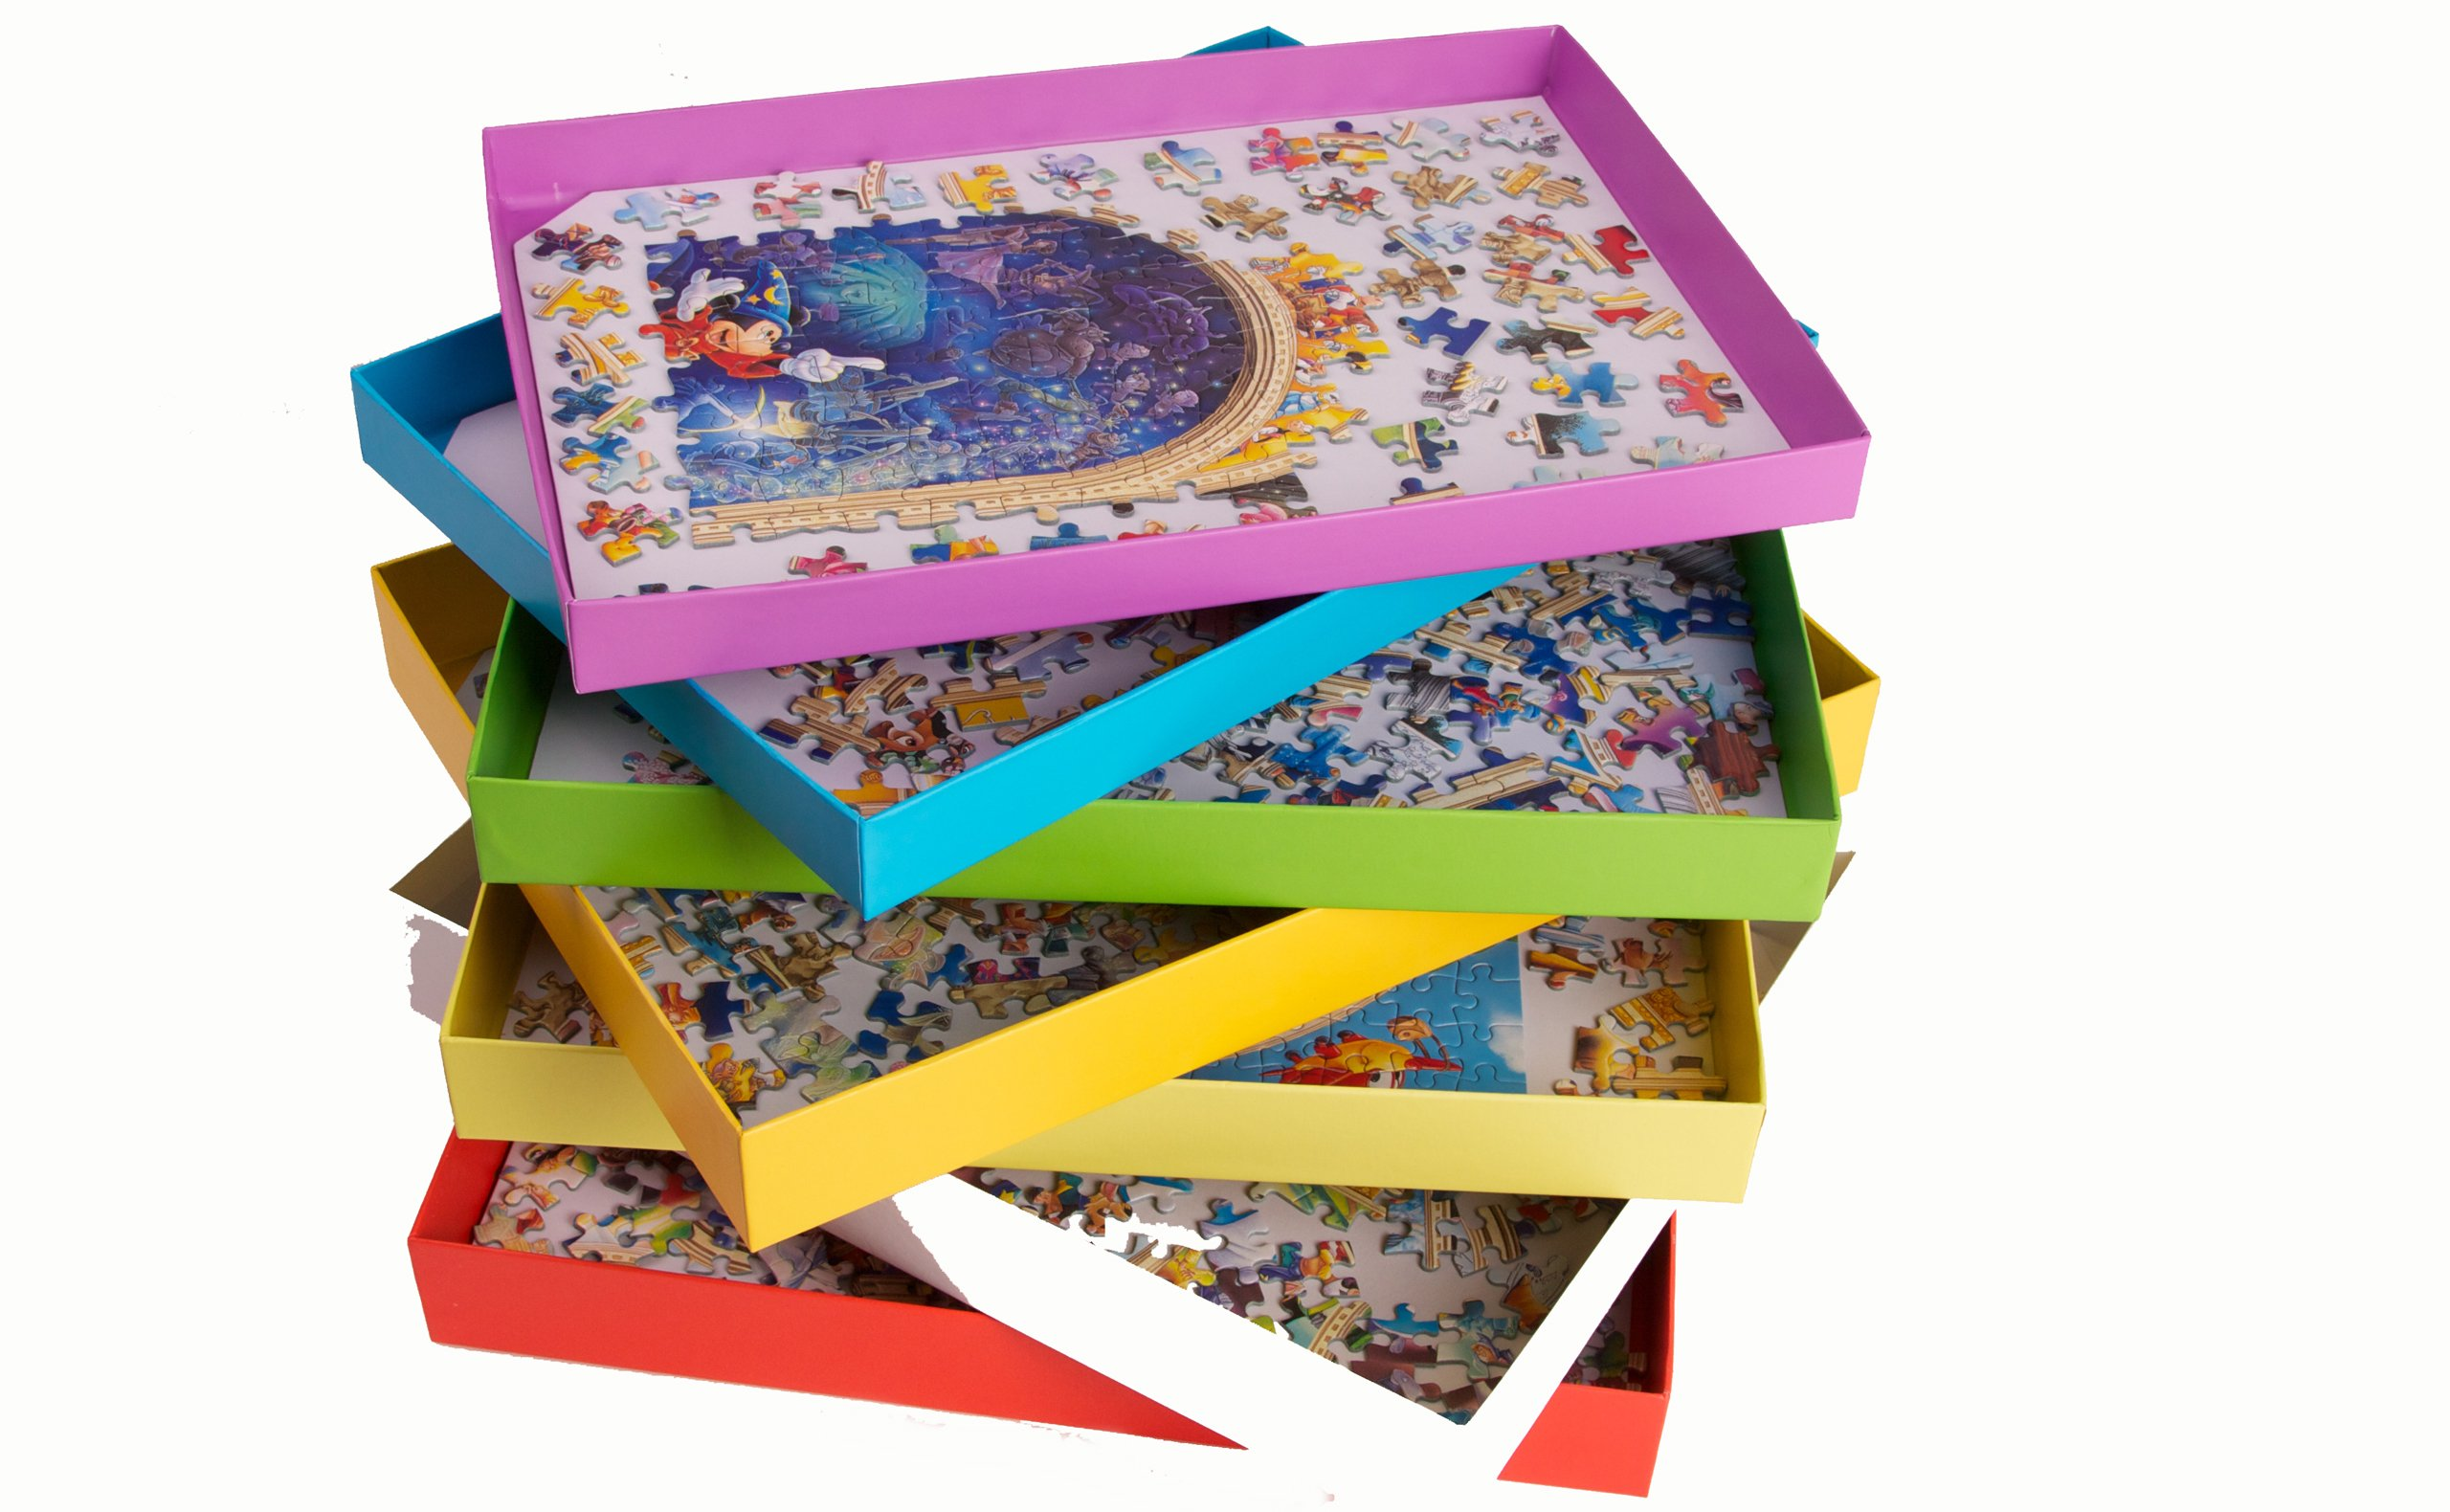 JIGSAFE - Jigsaw puzzle storage for up to 1,000 loose pieces